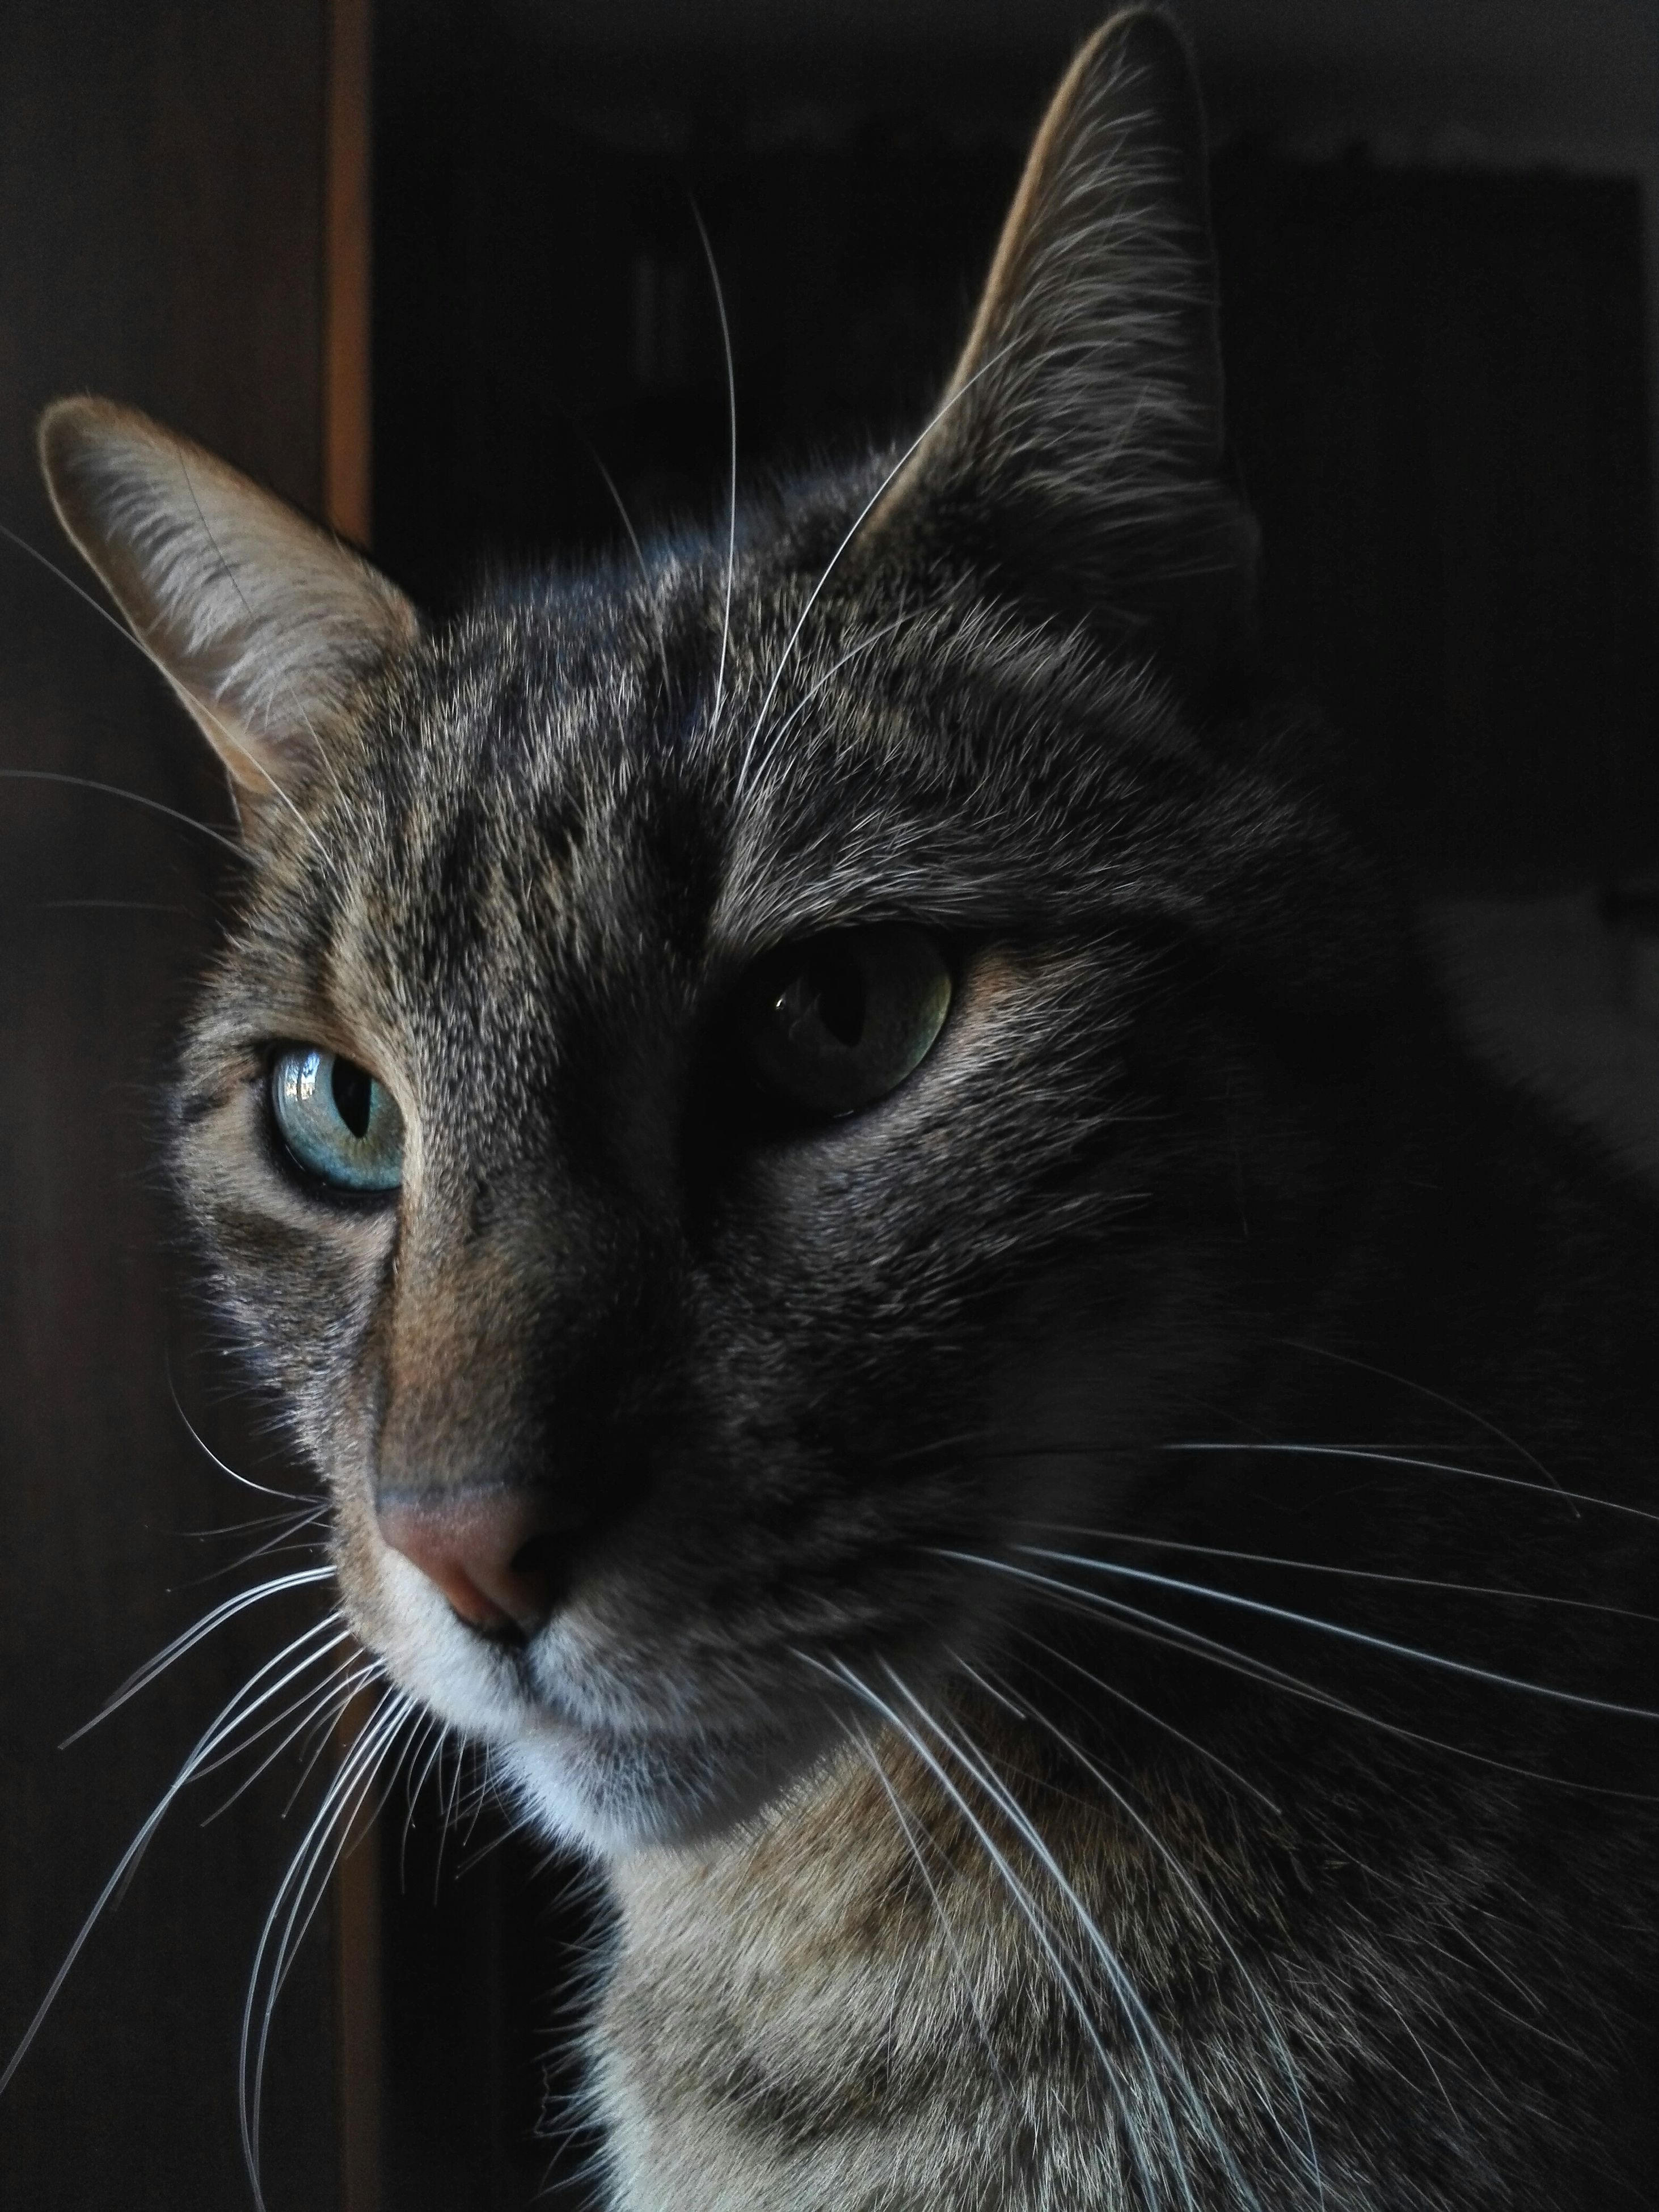 one animal, pets, domestic cat, domestic animals, animal themes, cat, indoors, whisker, mammal, feline, close-up, animal head, portrait, looking at camera, animal eye, focus on foreground, alertness, animal body part, no people